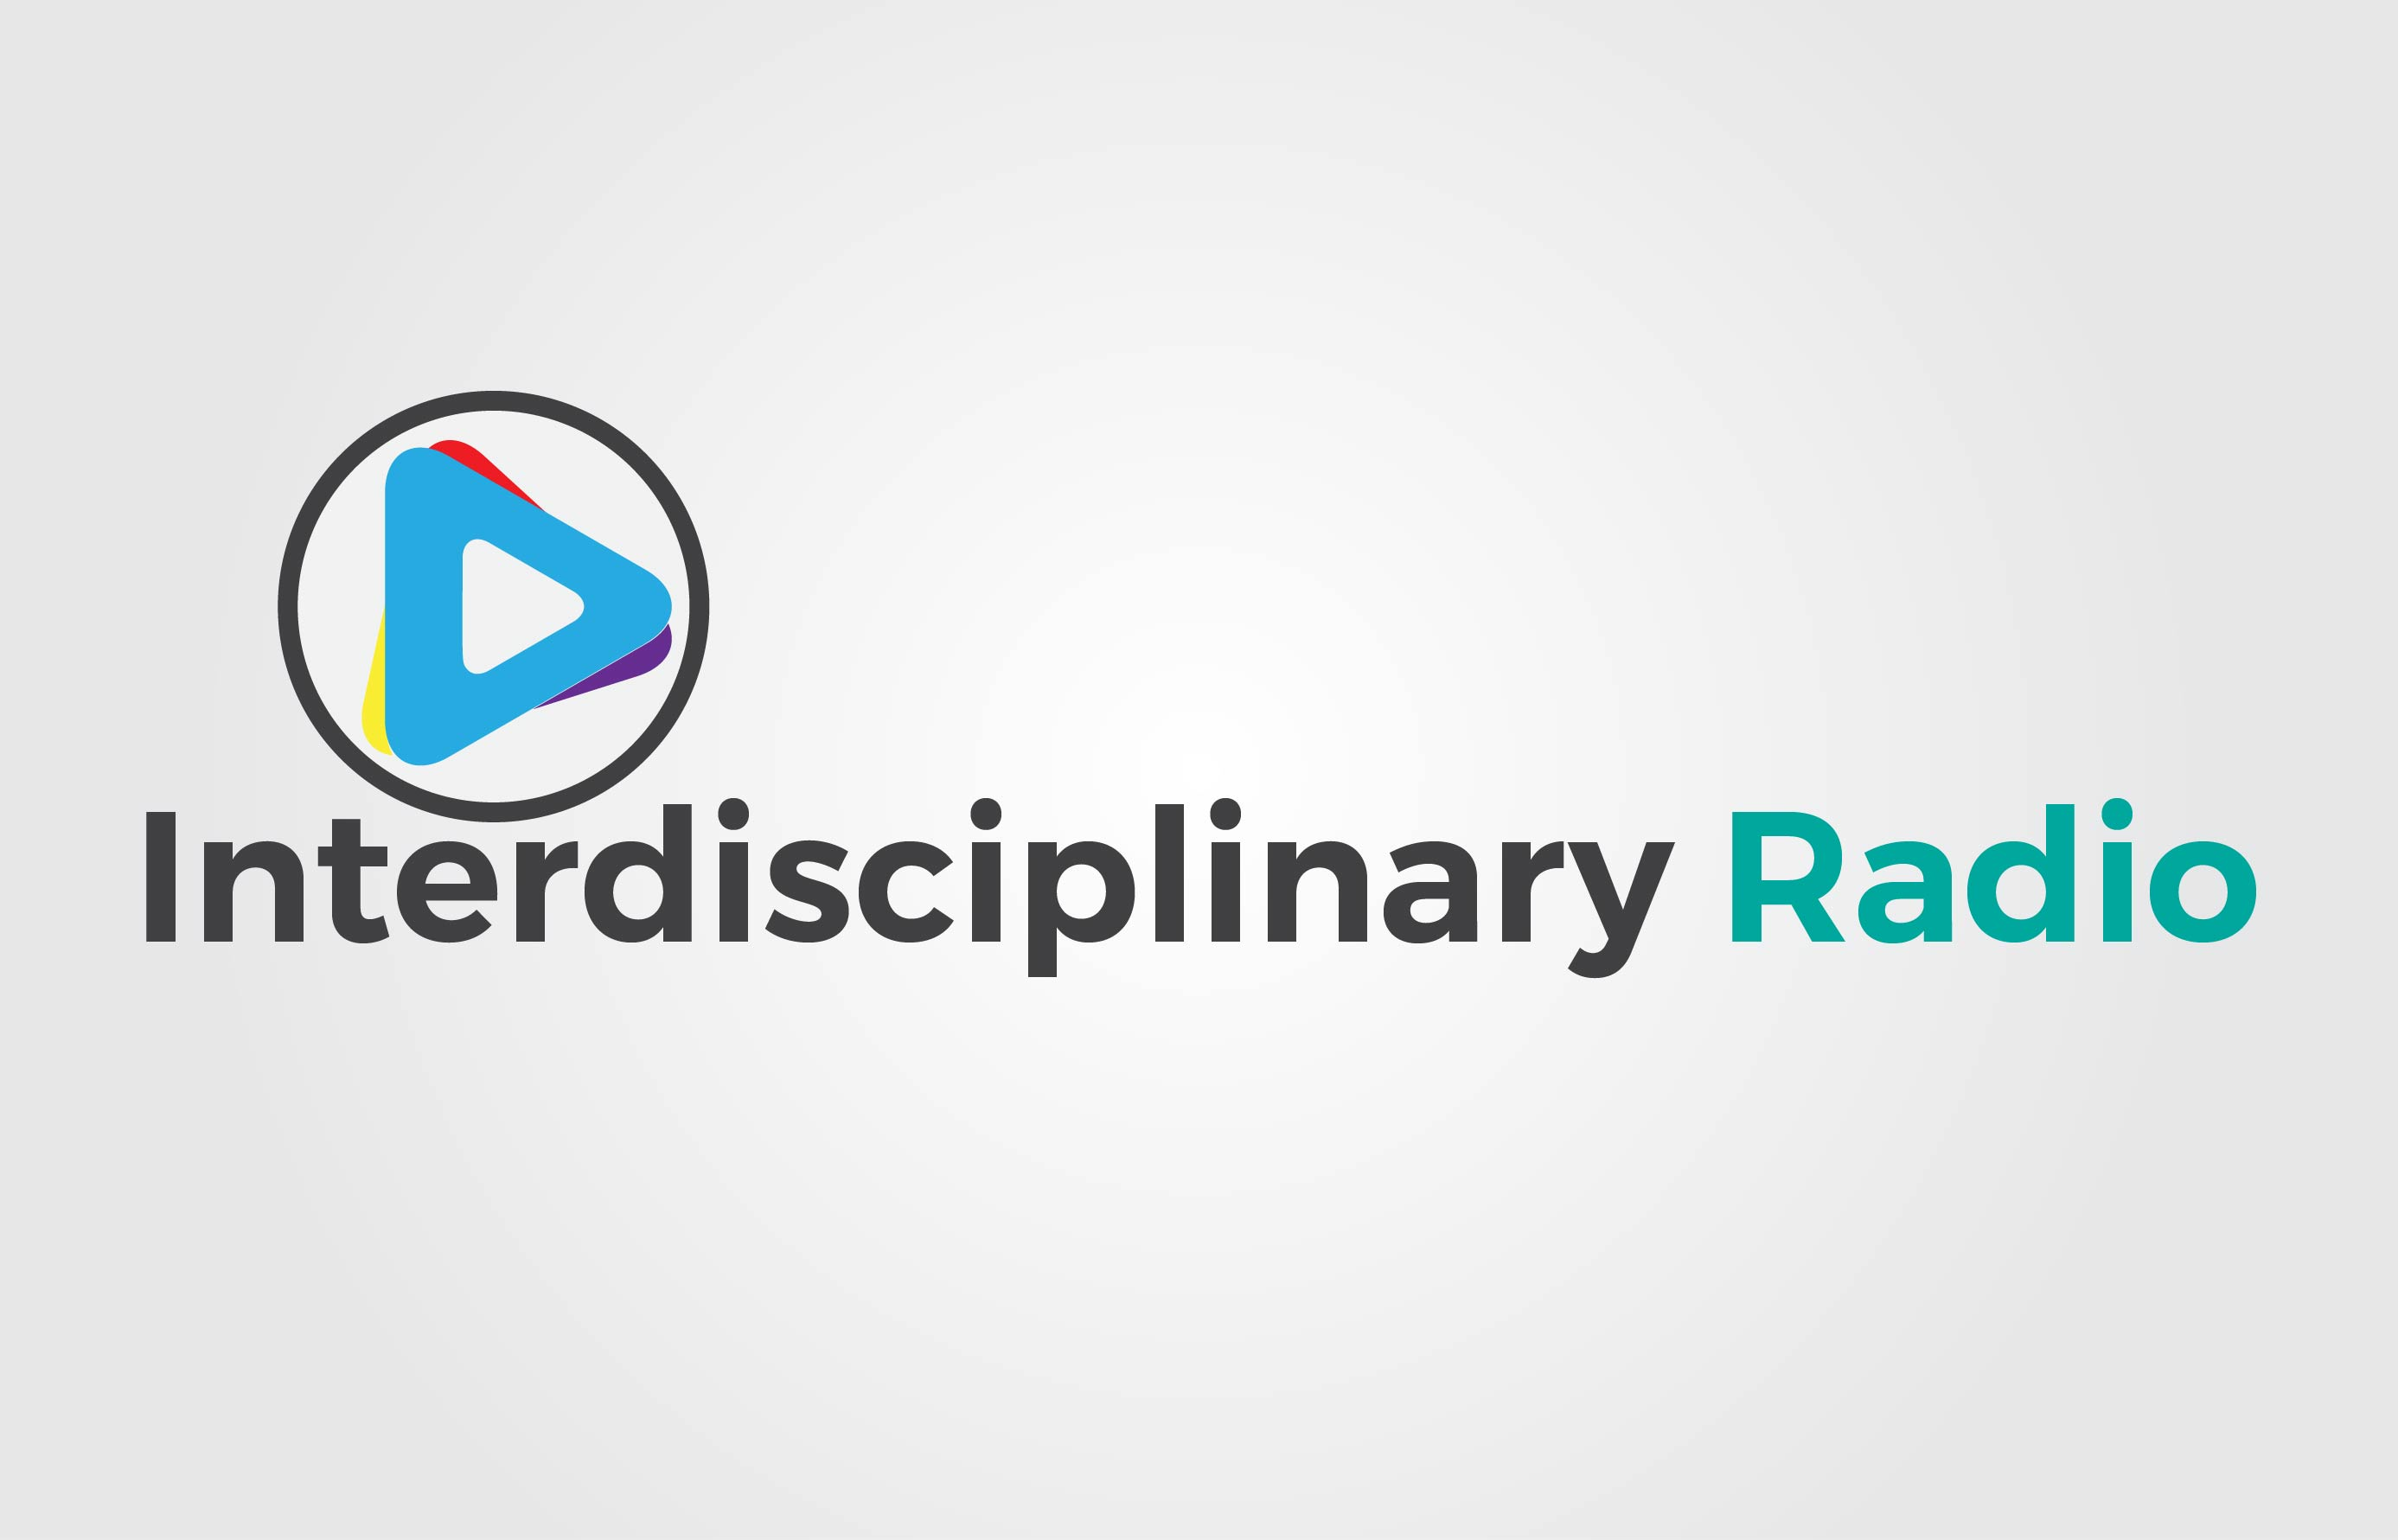 Interdisciplinary Radio